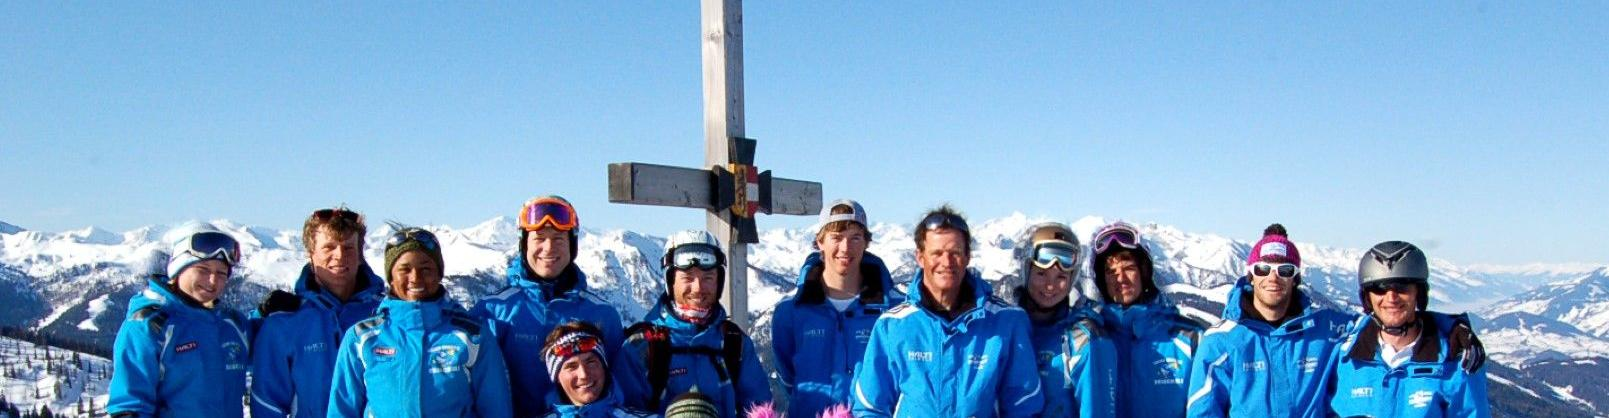 Ski school Flachau - well trained ski instructors